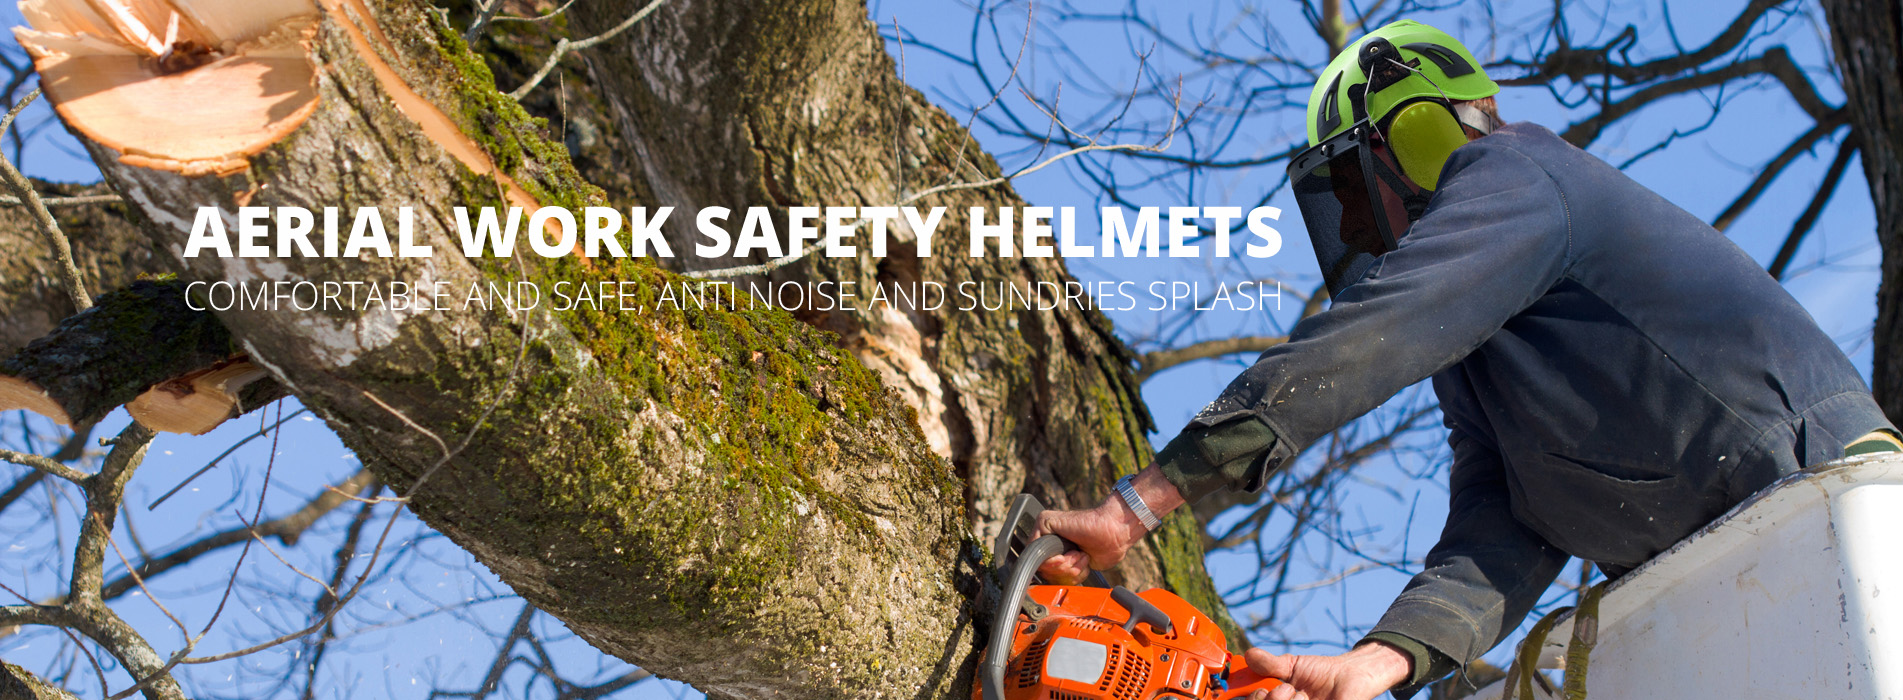 industrial safety helmet banner